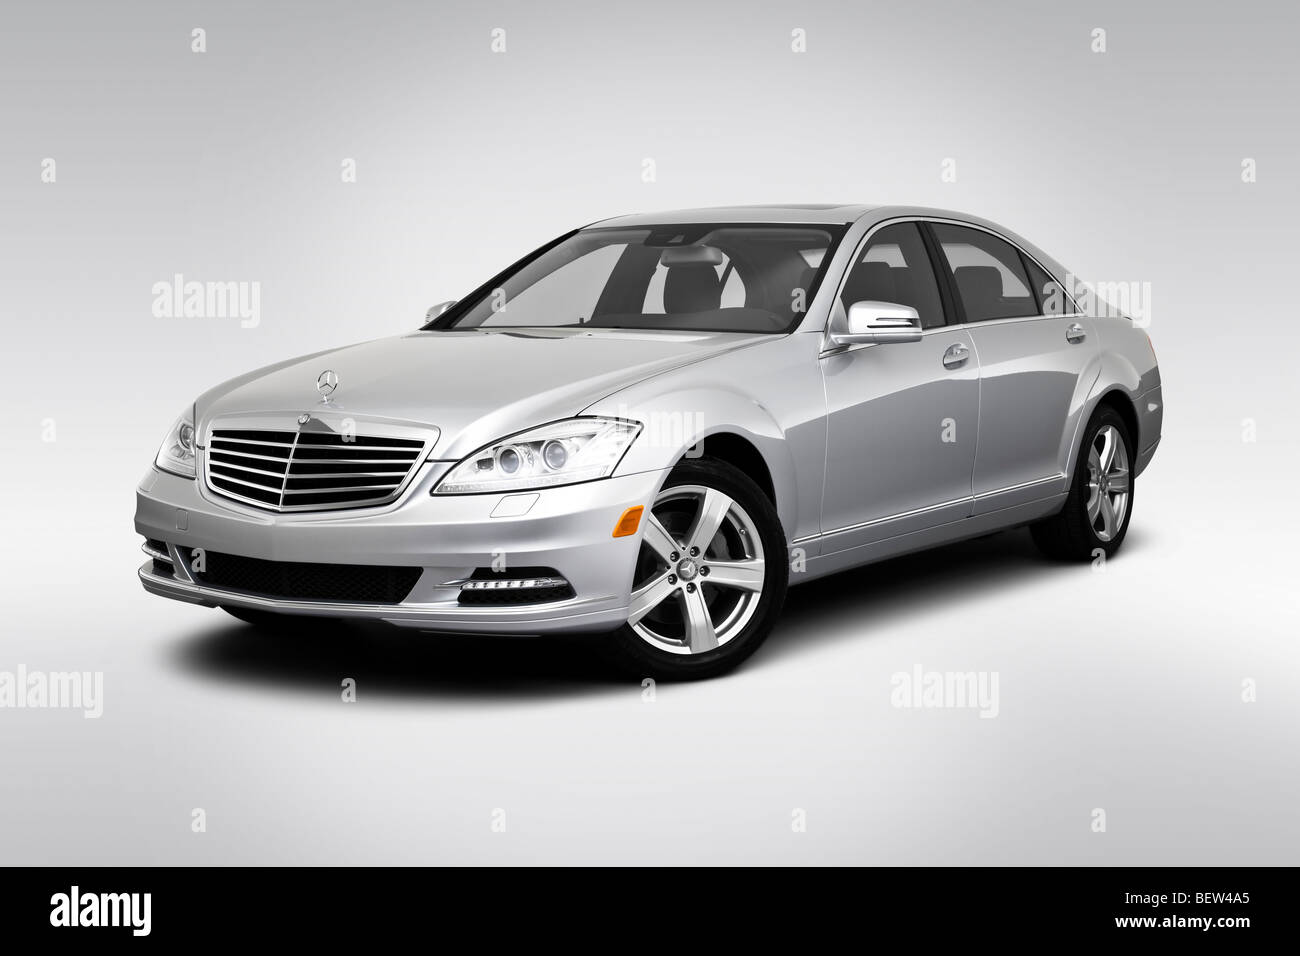 2010 mercedes benz s class s550 in silver front angle for Mercedes benz stock